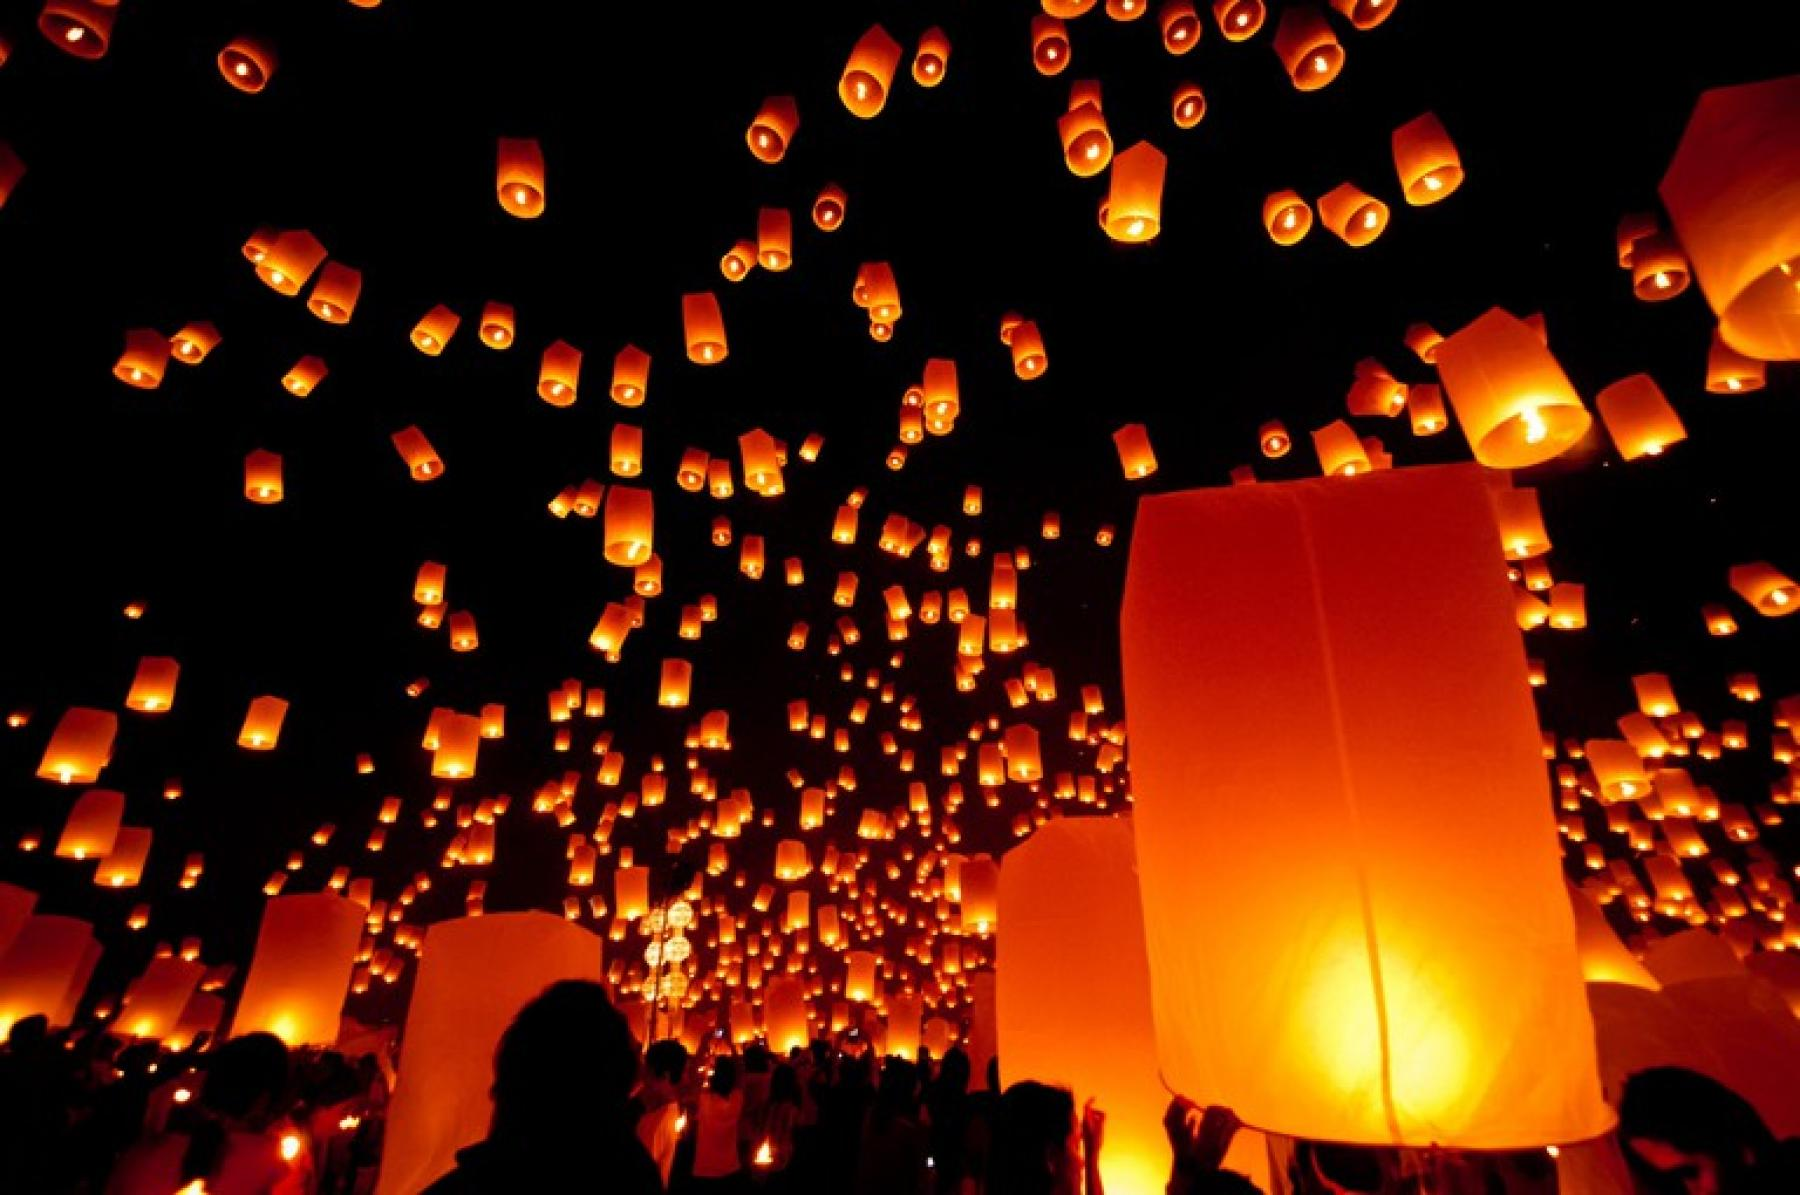 4D3N Chiang Mai, Epic New Year Eve Lantern Release, Ethical Elephant Experience starting at Chiang Mai, Thailand